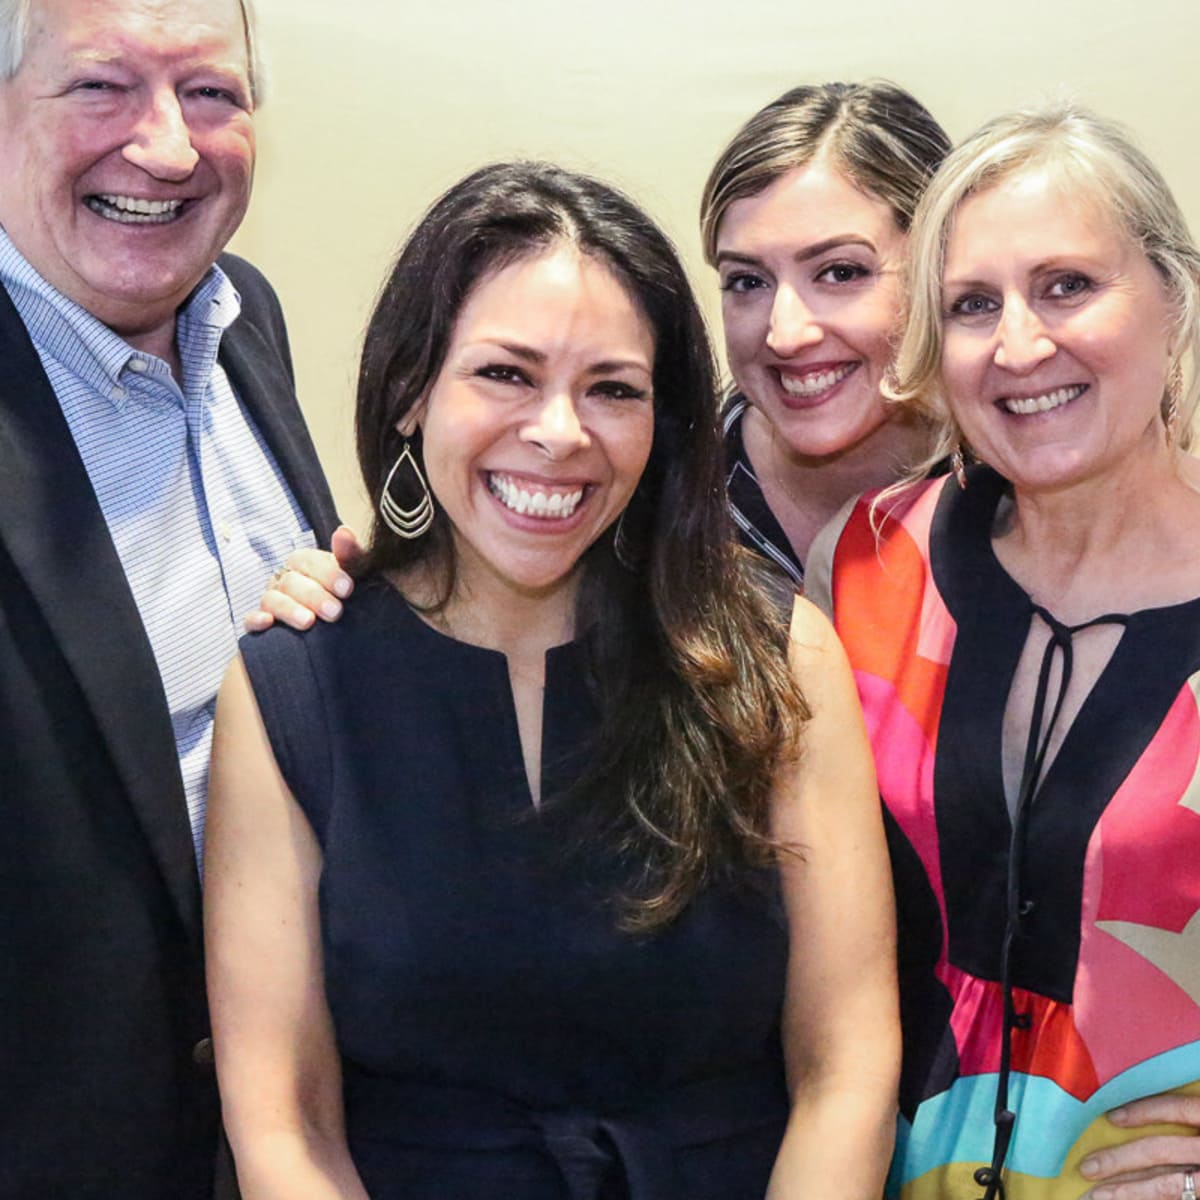 Earl Maxwell, CEO St. David's Foundation, Celeste Flores Executive Director of I Live Here I Give Here, Shannon Hartigan Contreras and Lisa Trahan of St. David's Foundation